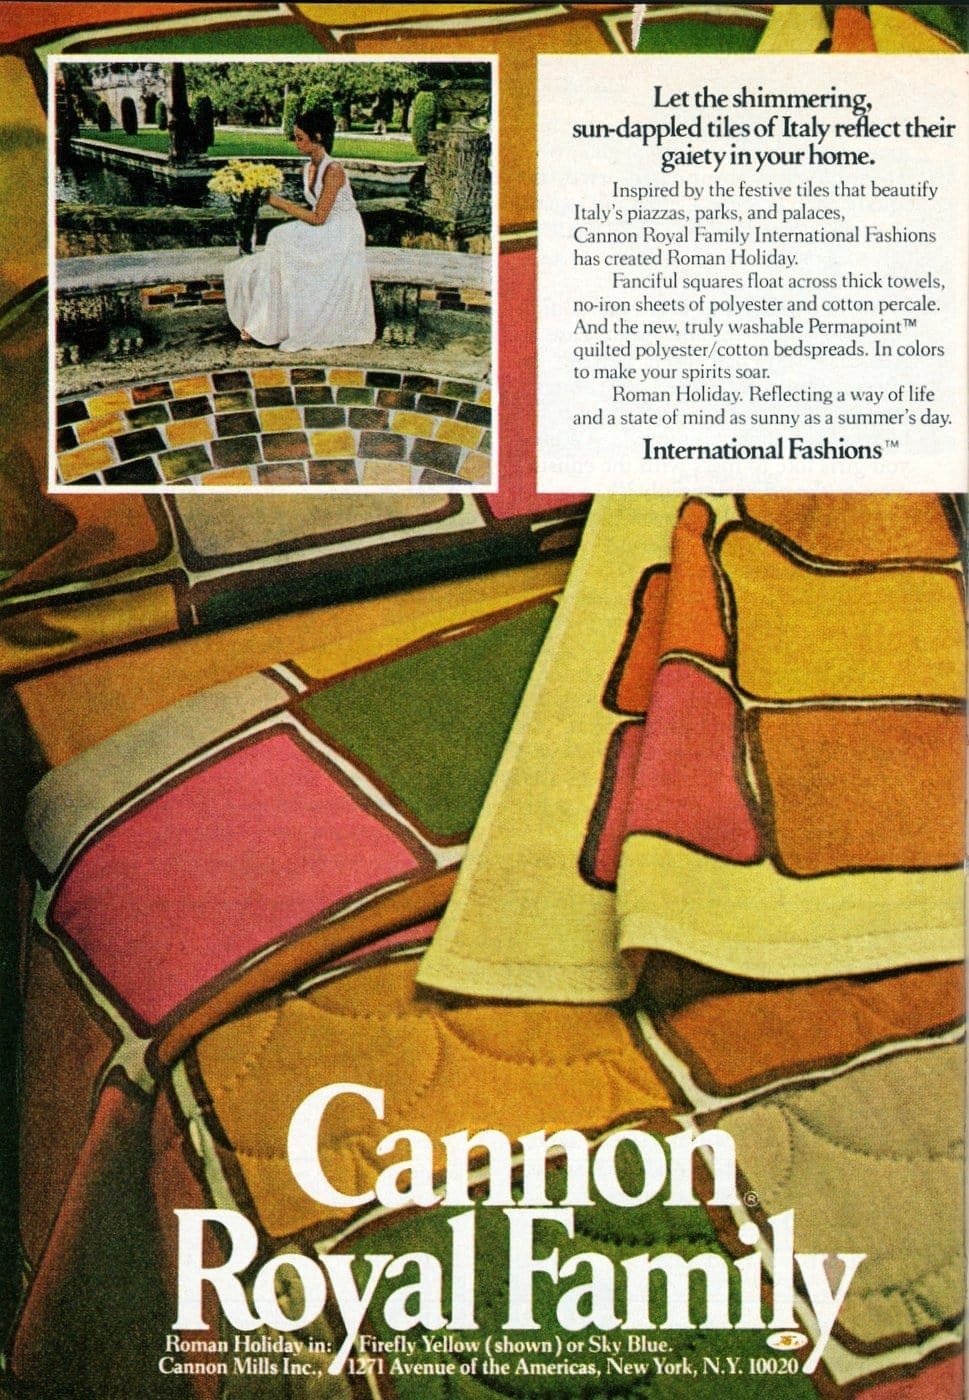 Vintage Cannon Royal Family Roman Holiday bedspread pattern (1973)